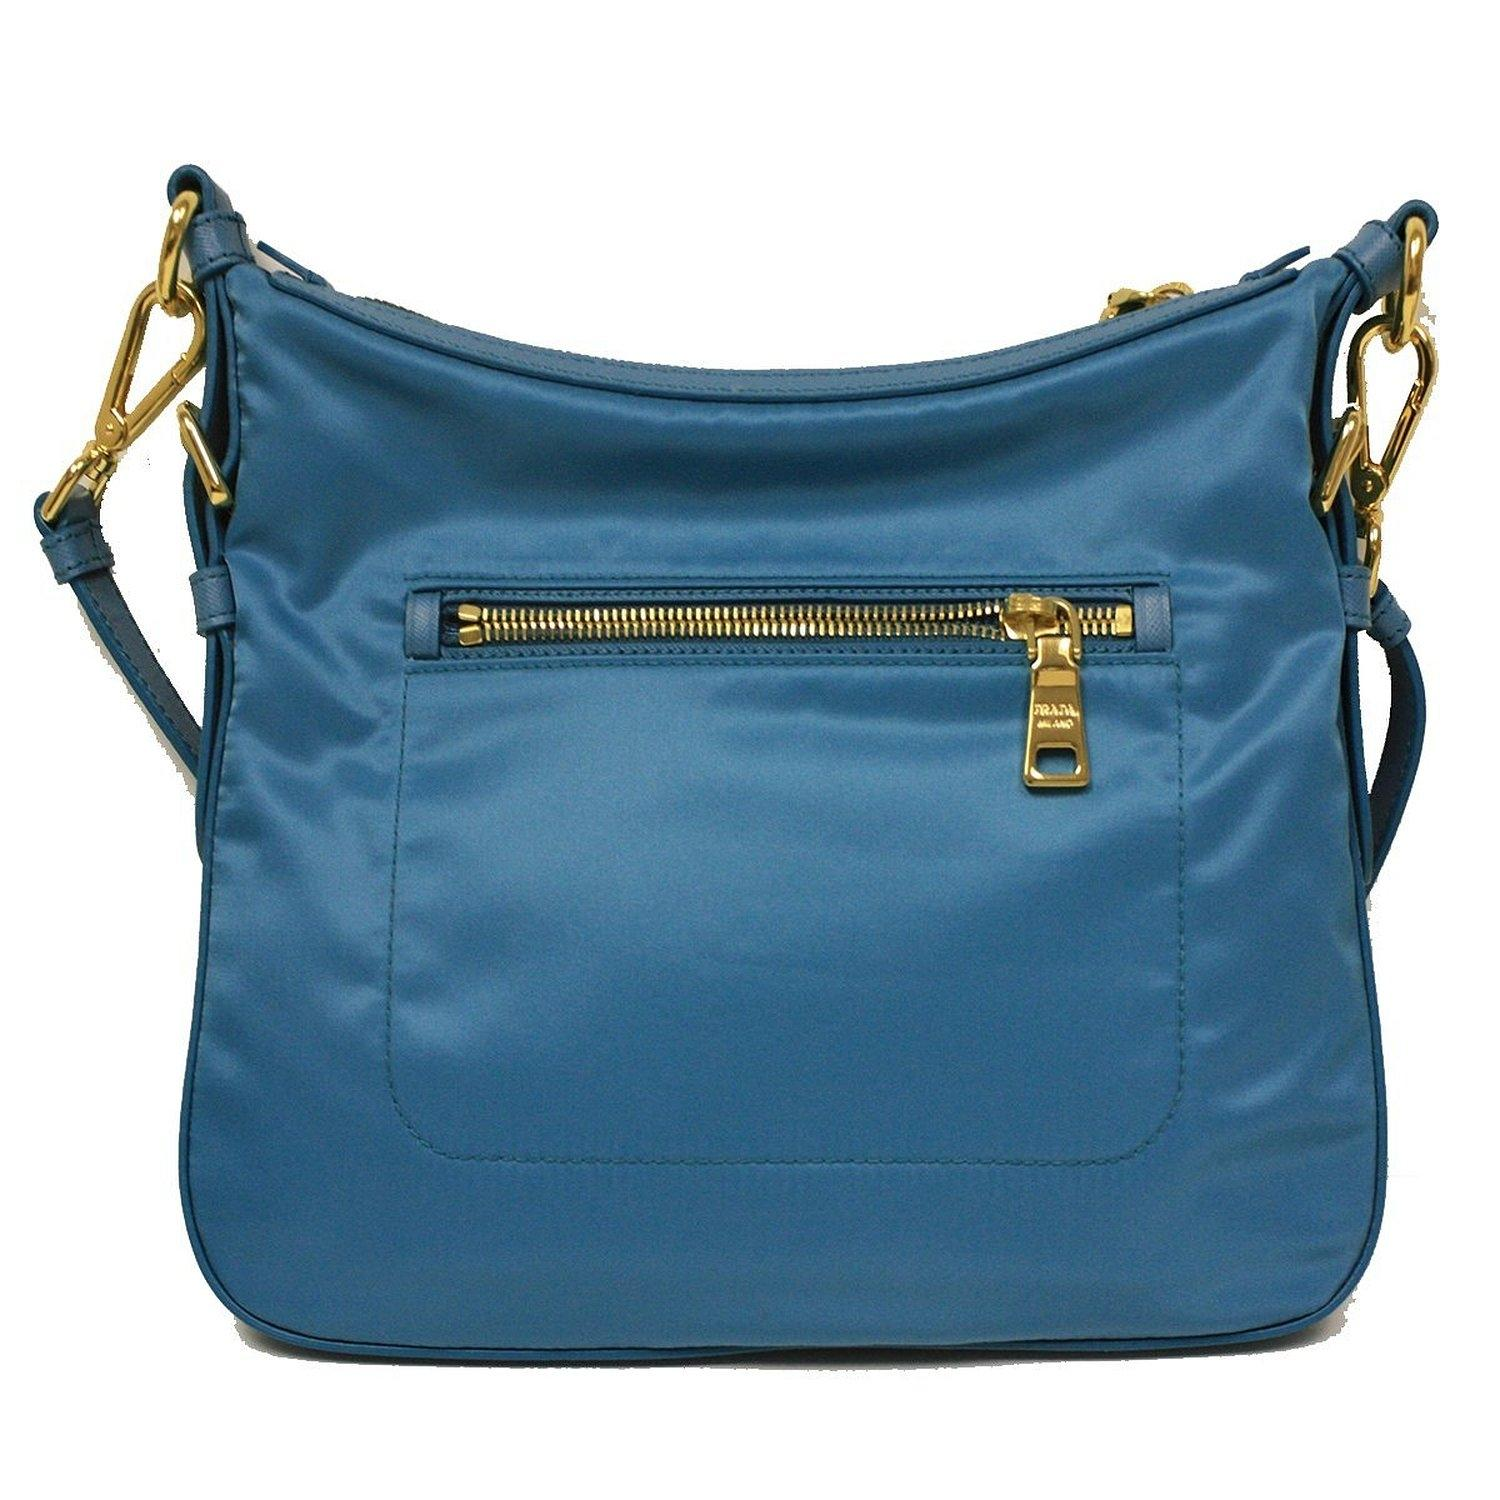 75904af6618a ... switzerland prada tessuto saffian crossbody bt0706 turquoise blue nylon messenger  bag tradesy 5a53a 92948